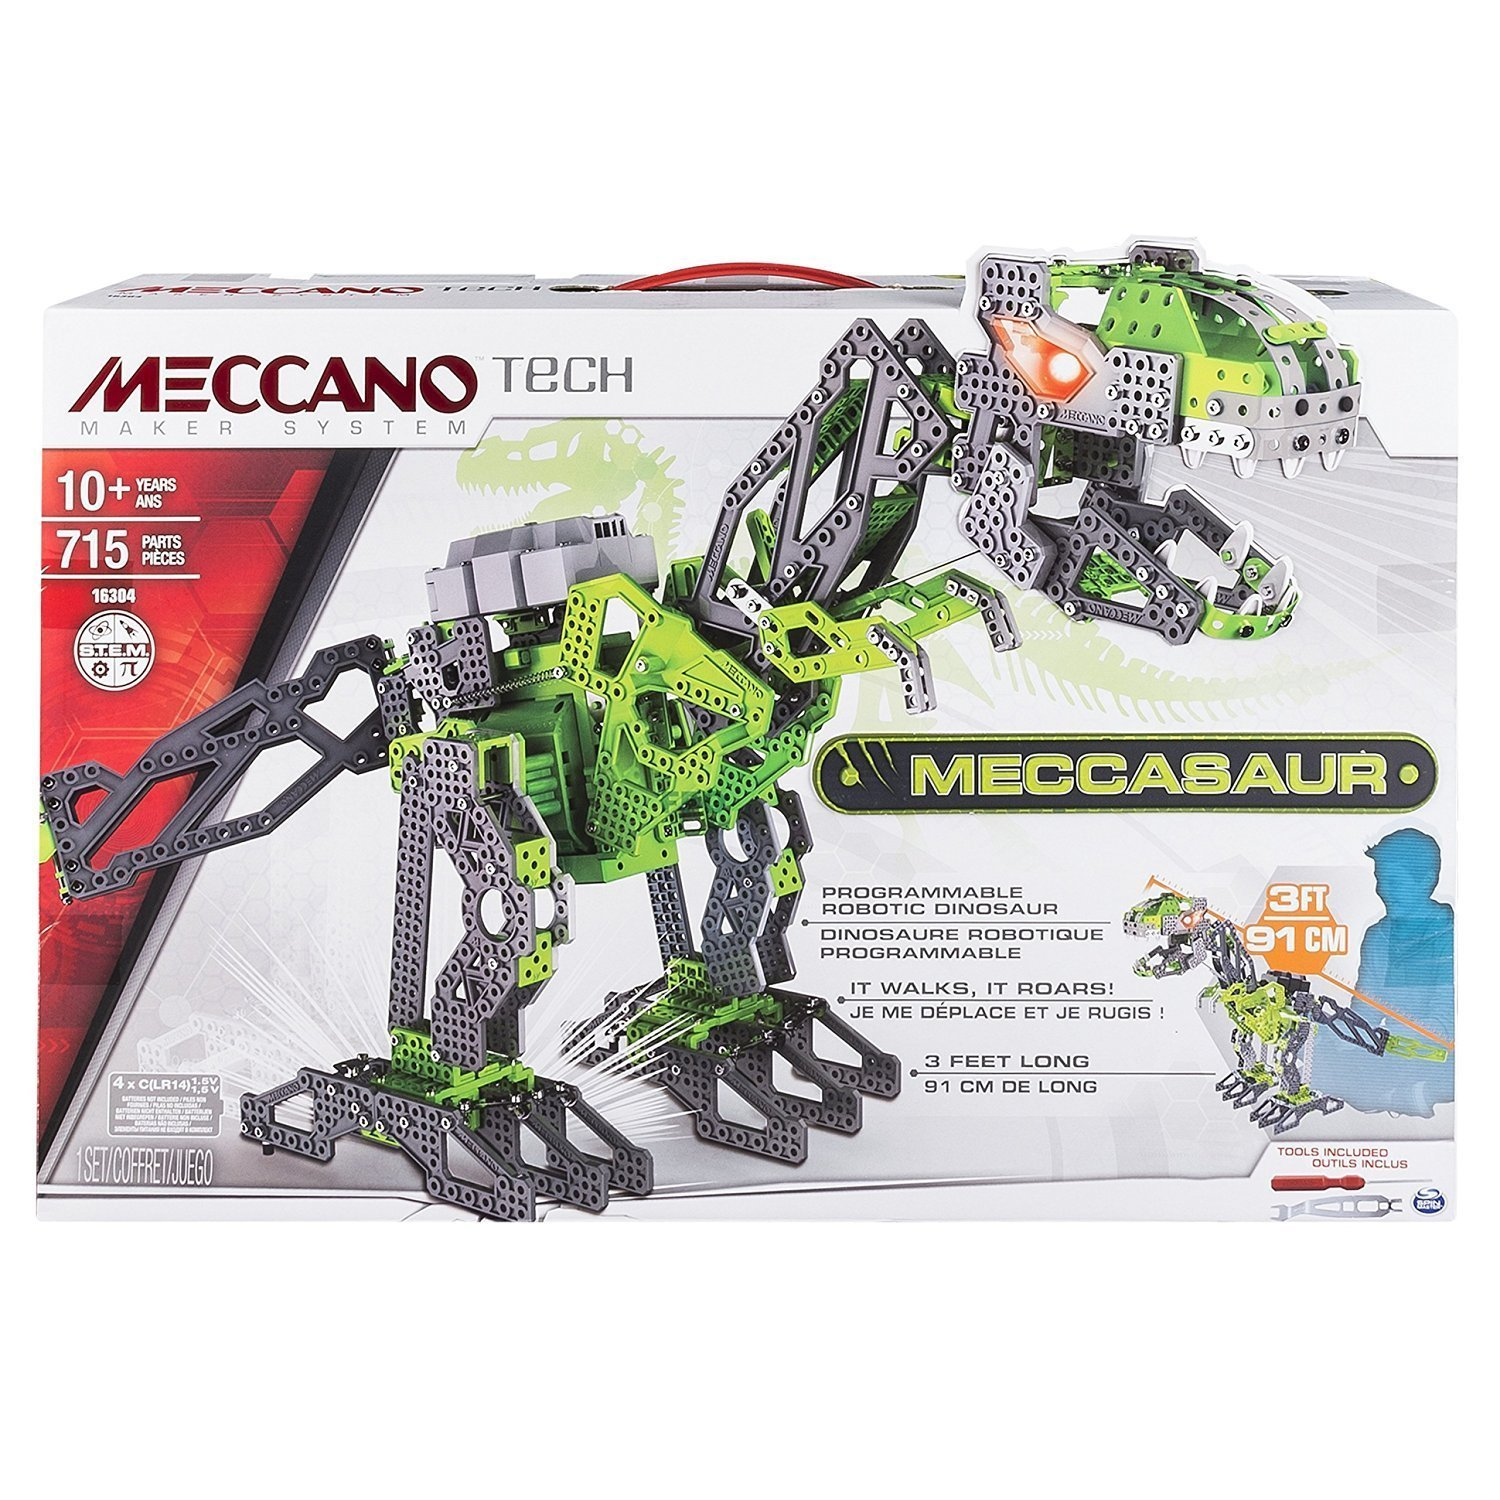 Meccano Meccasaur Review